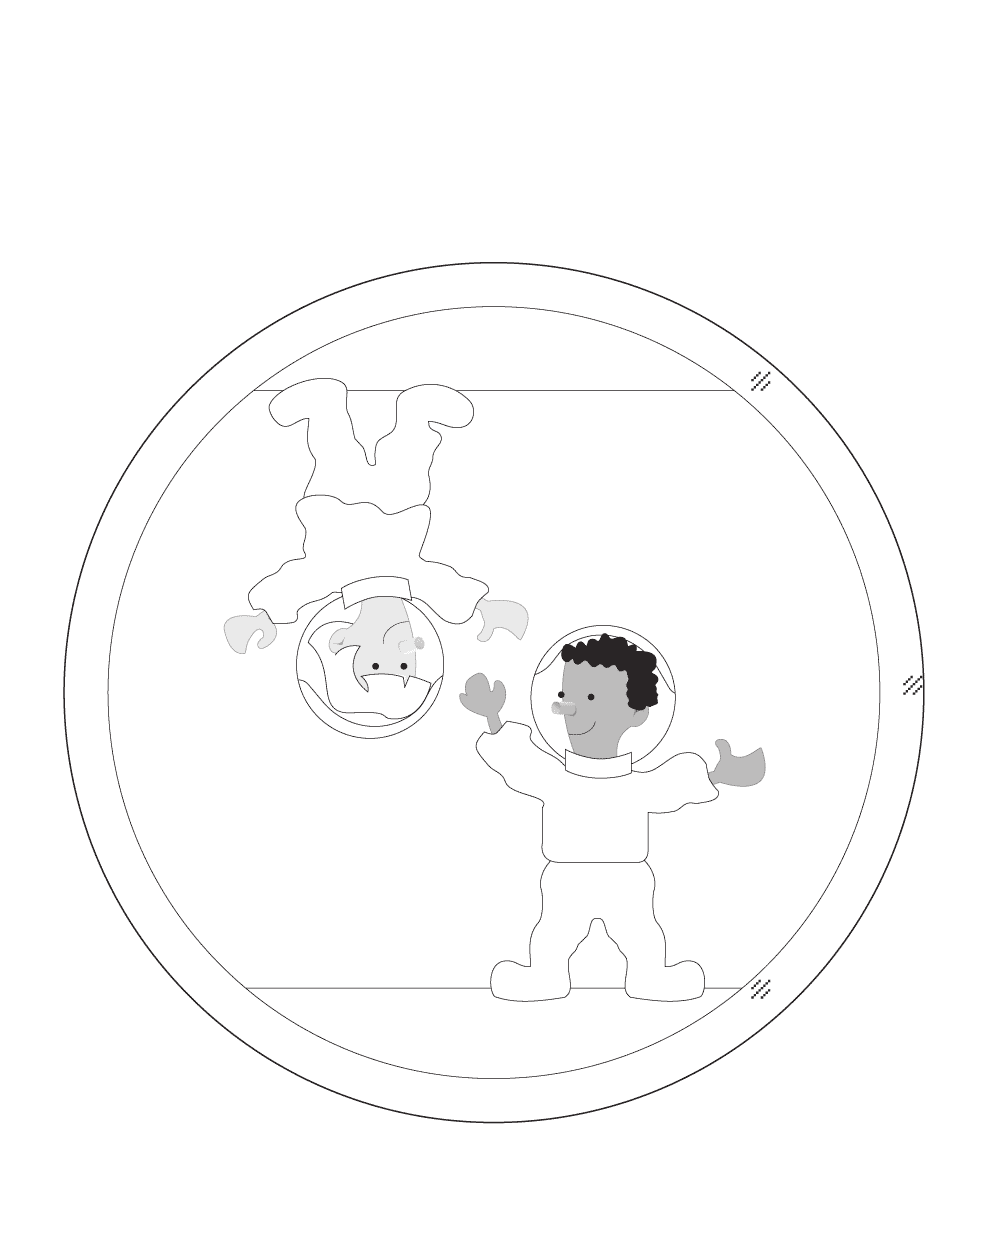 Floating astronauts coloring page